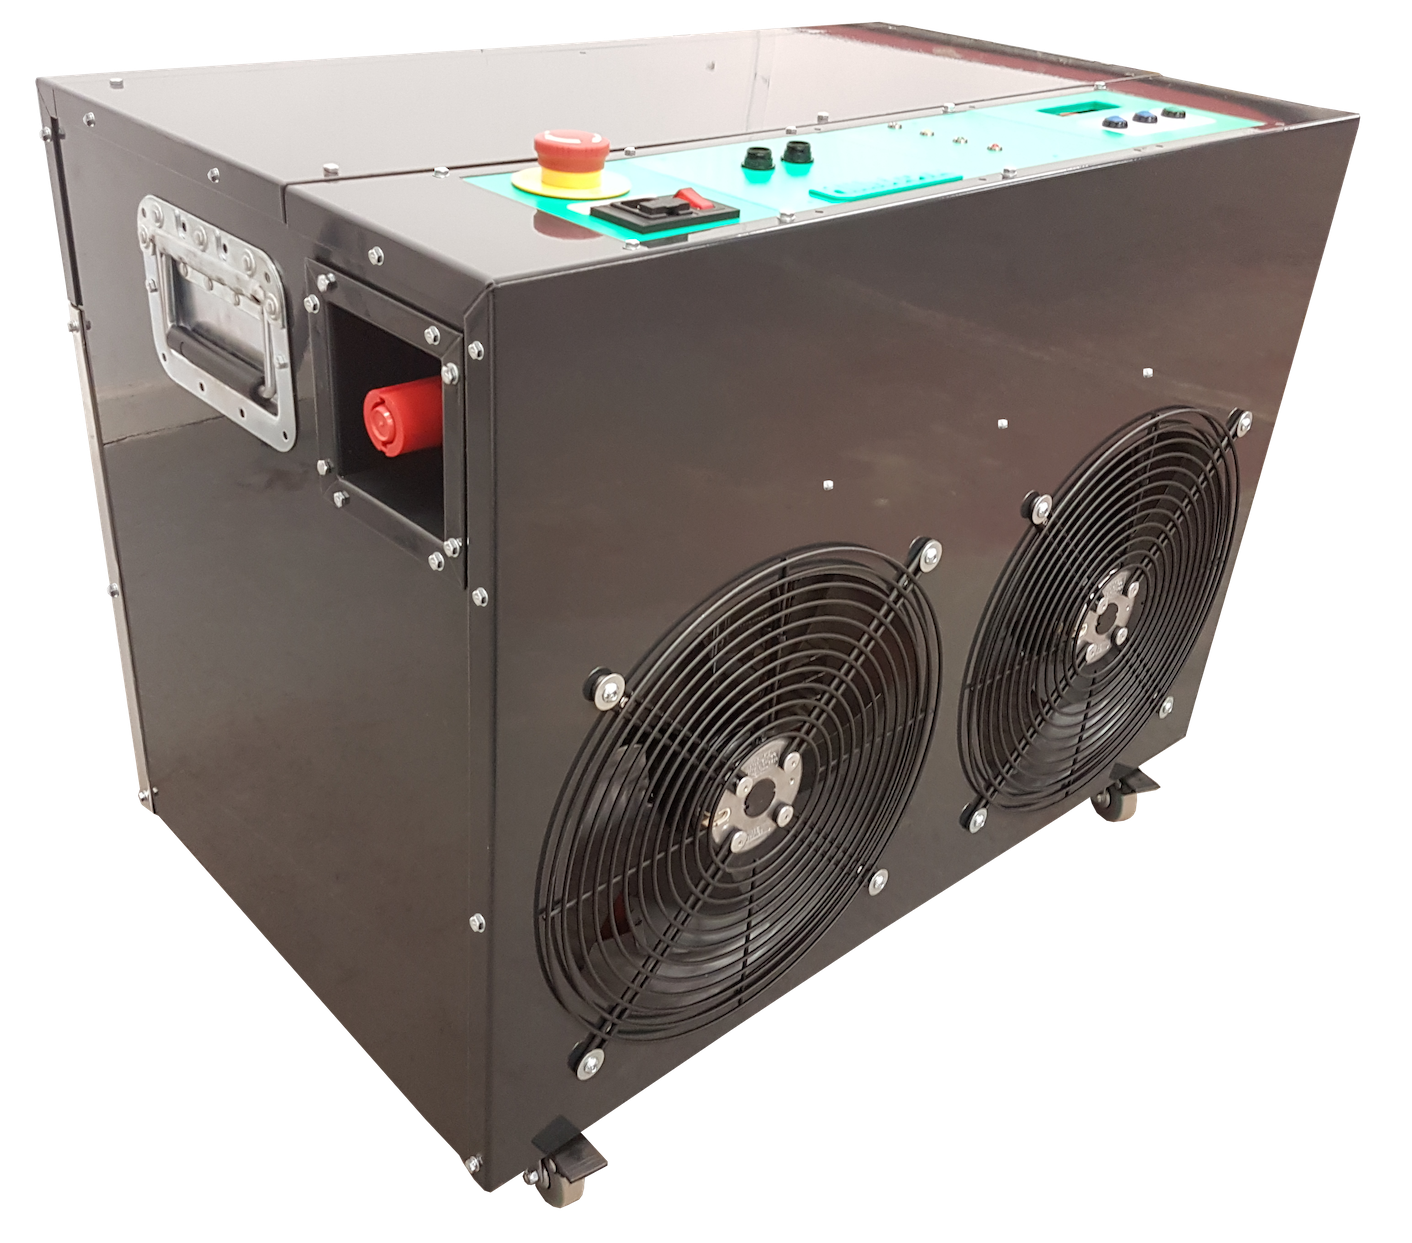 HPBL DC Load Banks